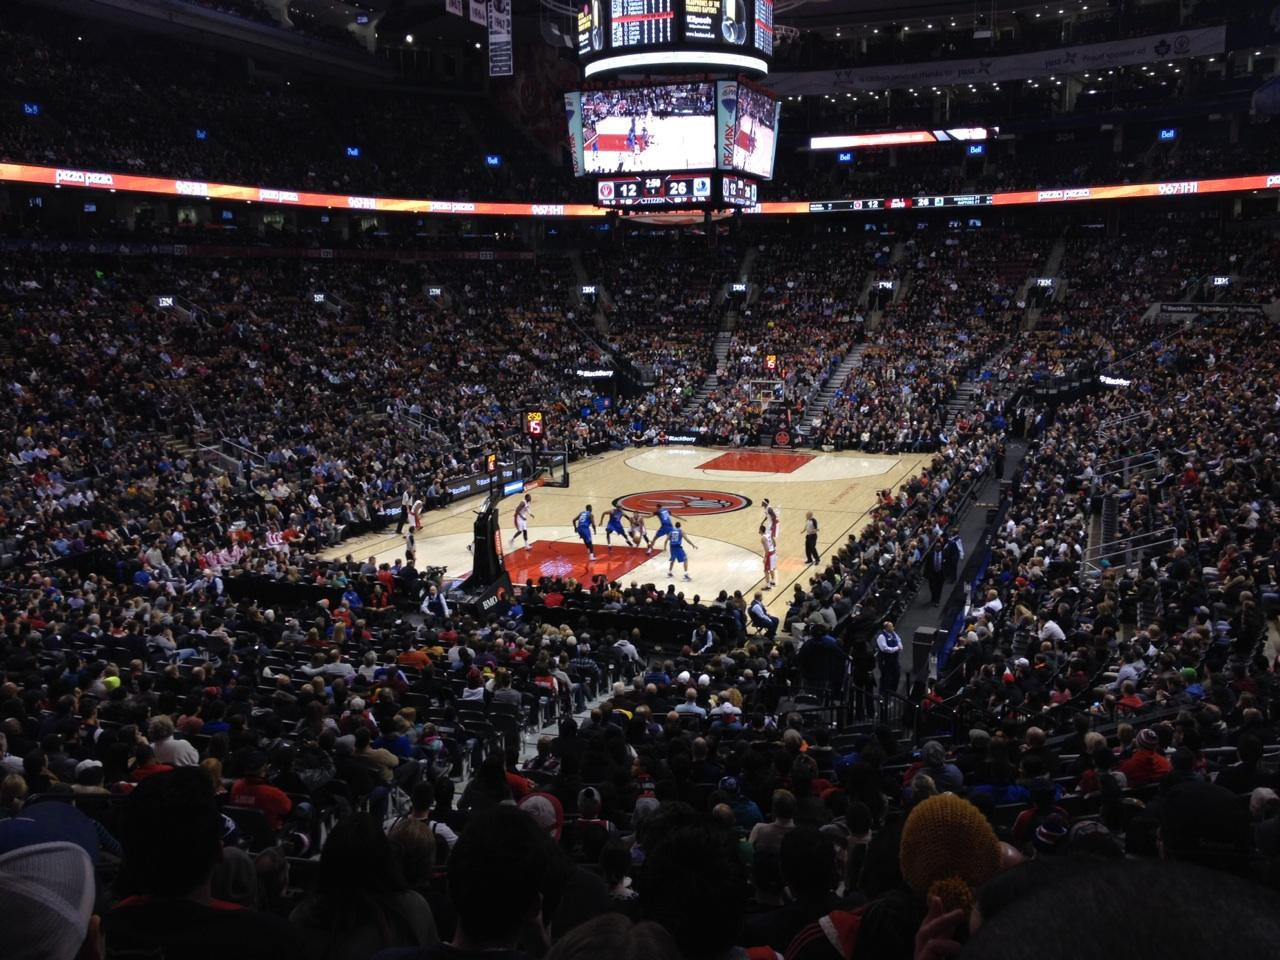 Toronto Raptors Seat View for Air Canada Centre Section 112, Row 25, Seat 11